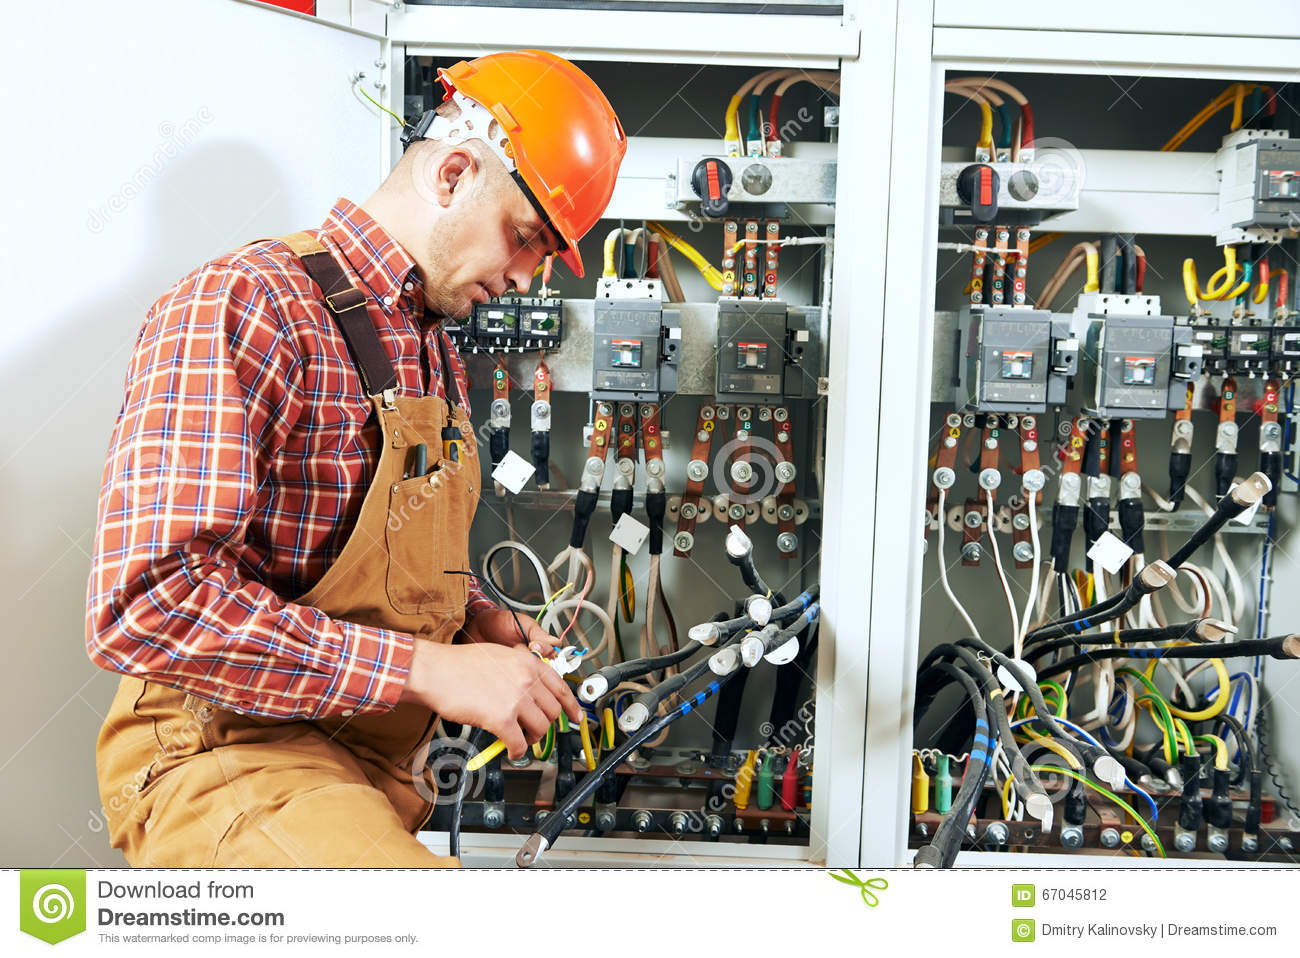 Electrician at wiring work stock photo. Image of embling ... on wiring contractors, clutch works, electronics works, floor works, painting works, fabrication works, pump works, motor works,